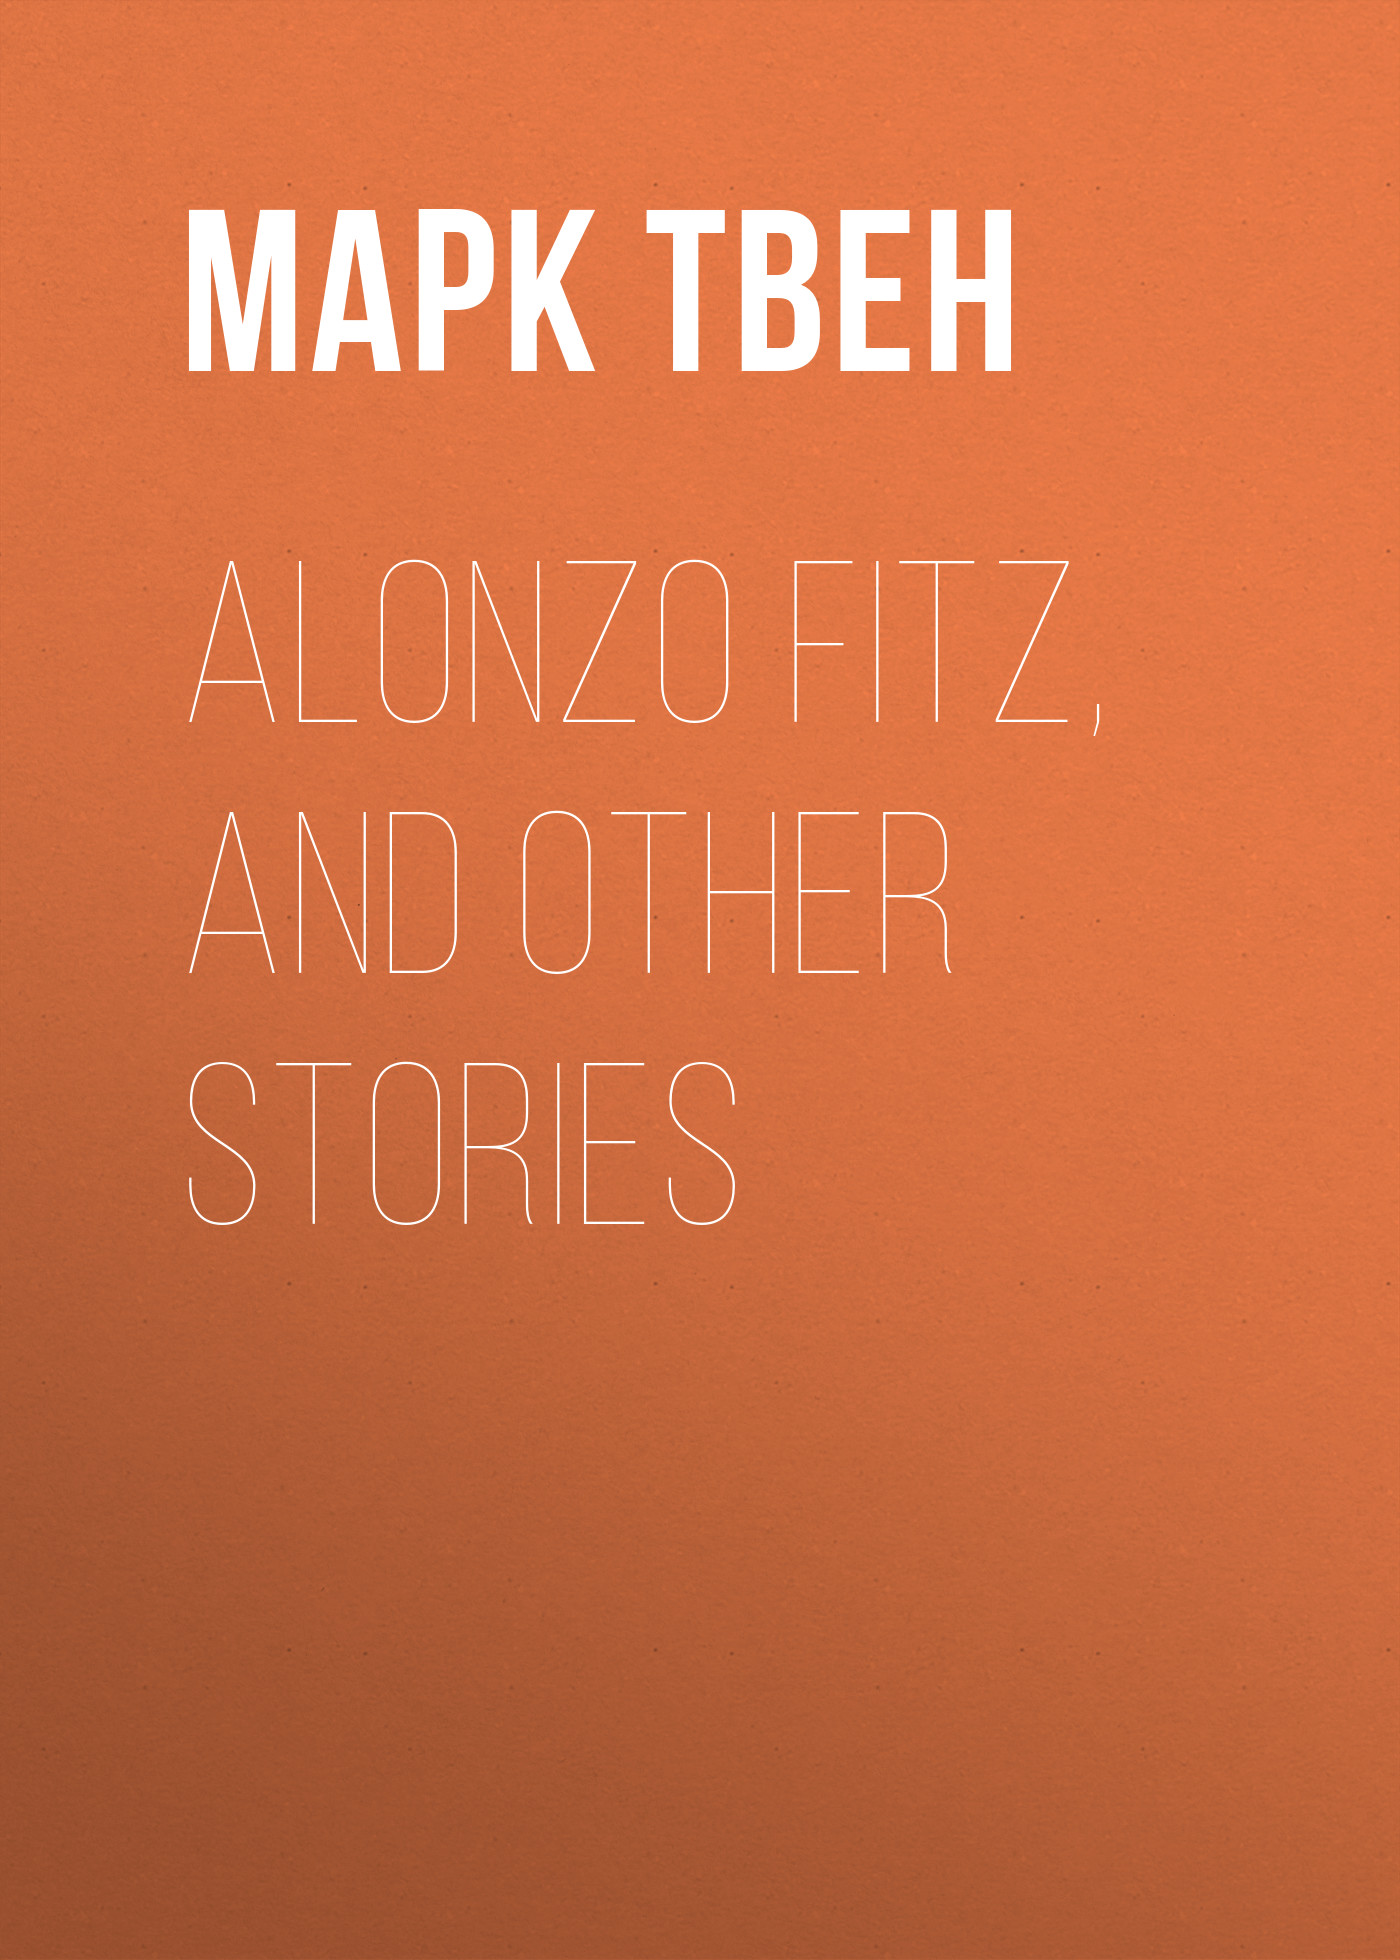 Марк Твен Alonzo Fitz, and Other Stories twain m alonzo fitz and other stories